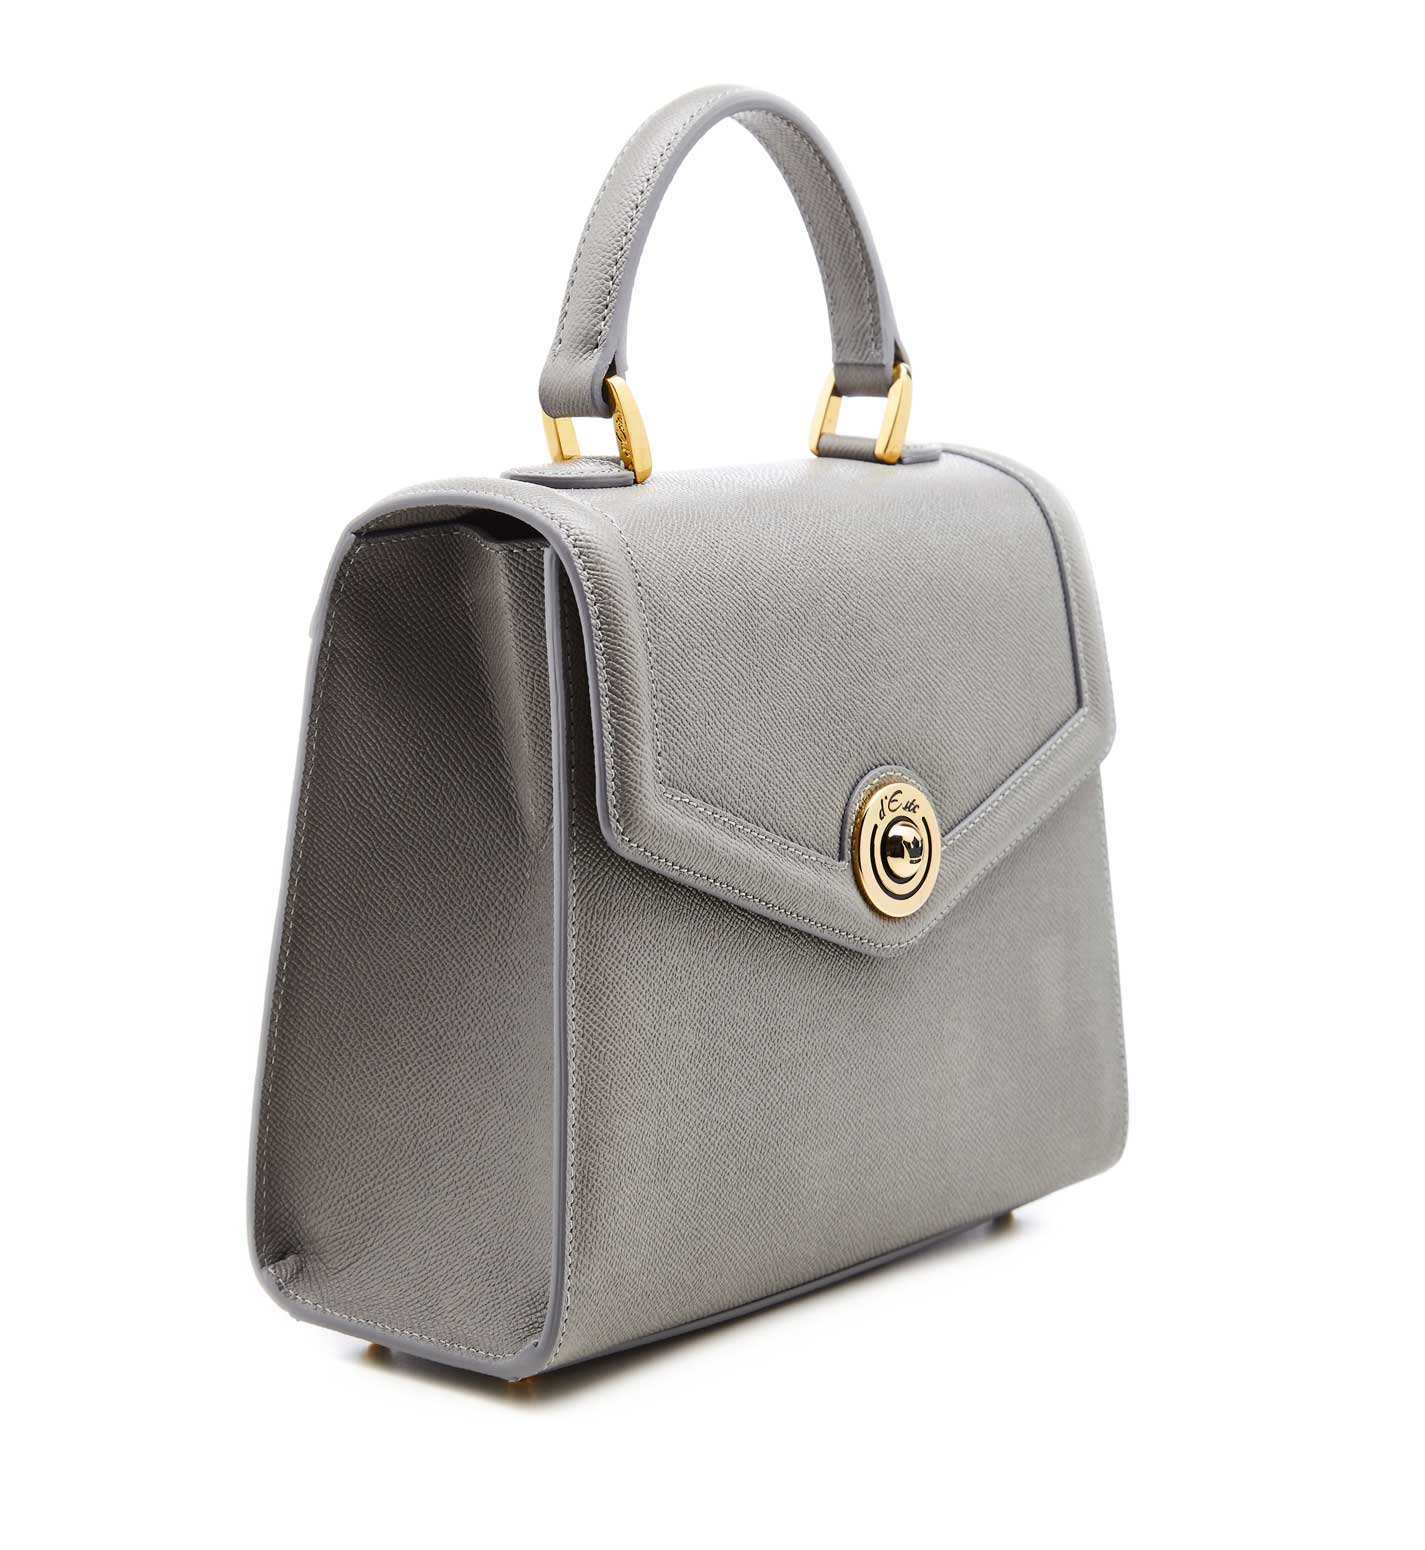 Pale Grey Leather Per Bags